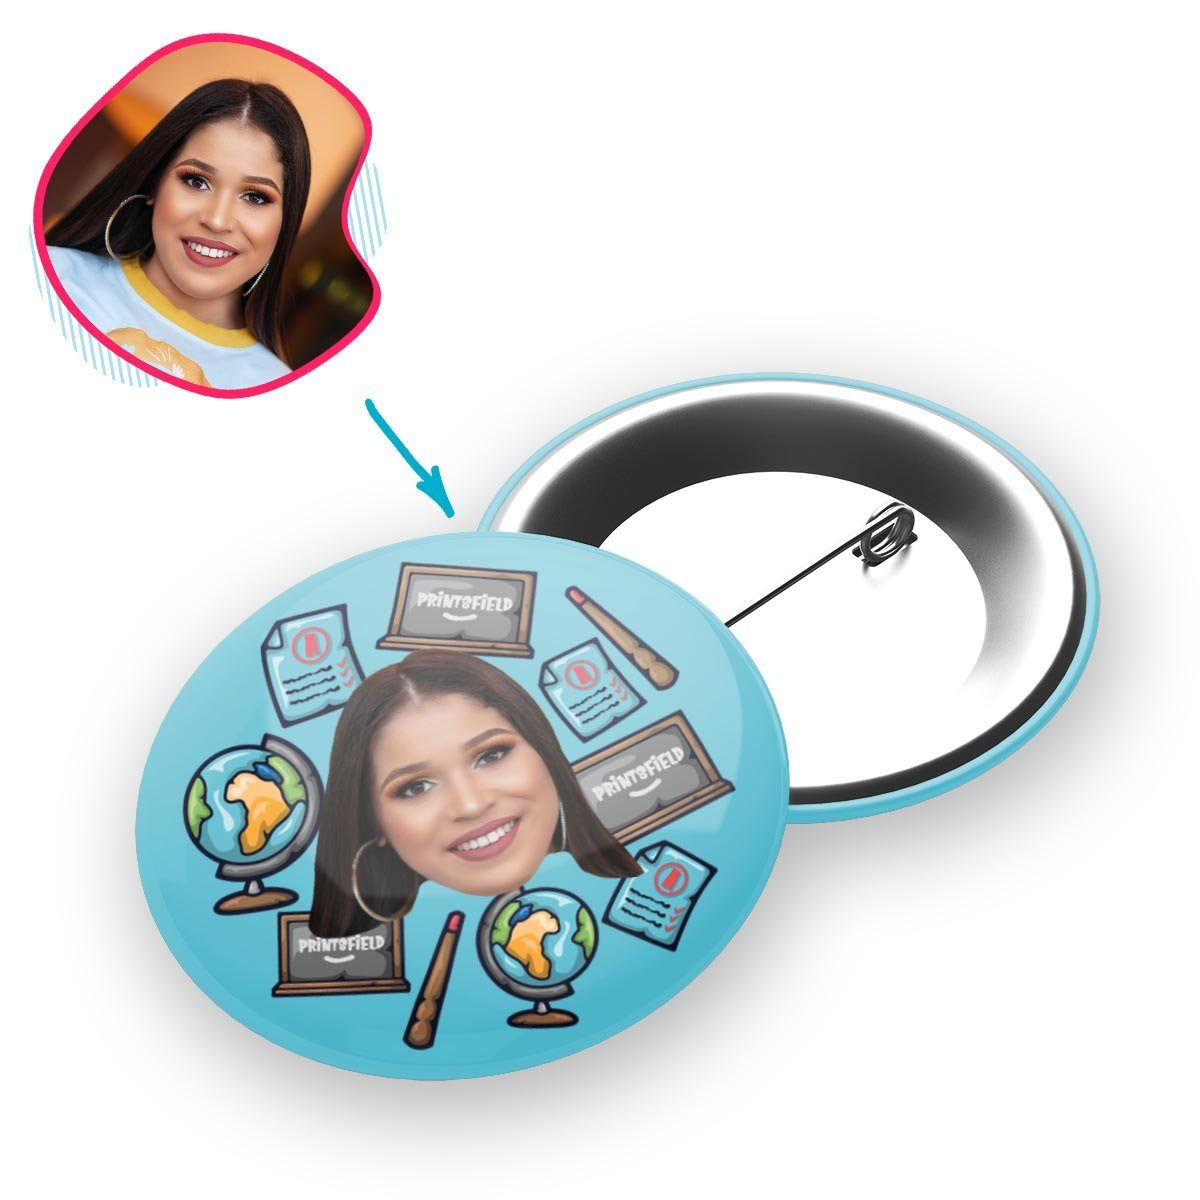 Blue Teacher personalized pin with photo of face printed on it